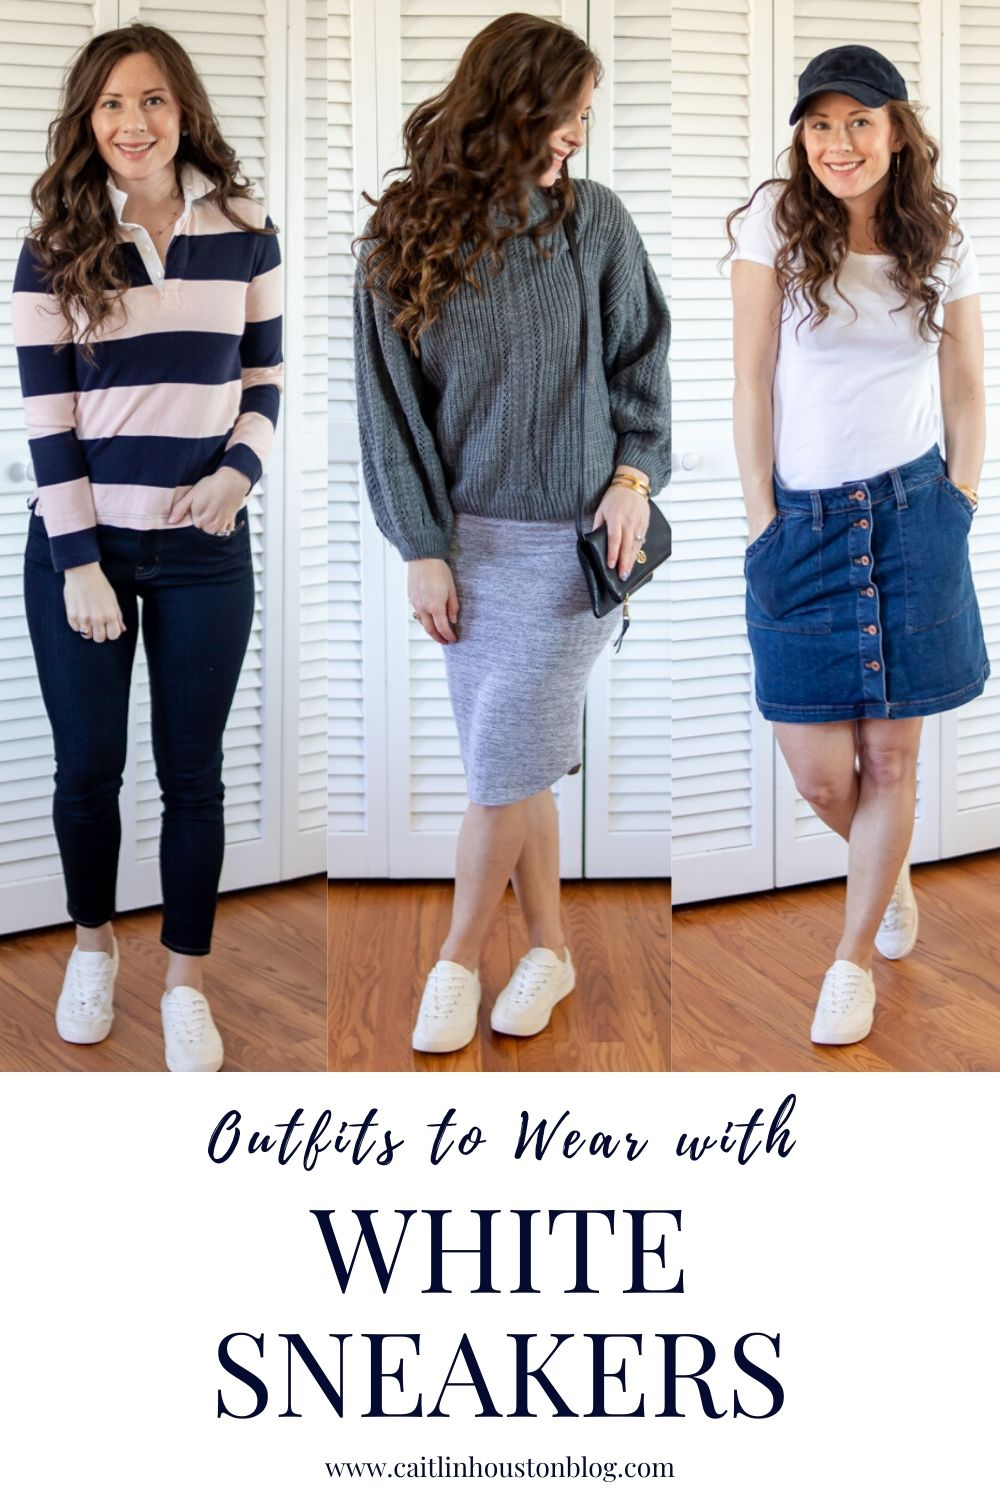 Style Session | Outfits to Wear with White Sneakers